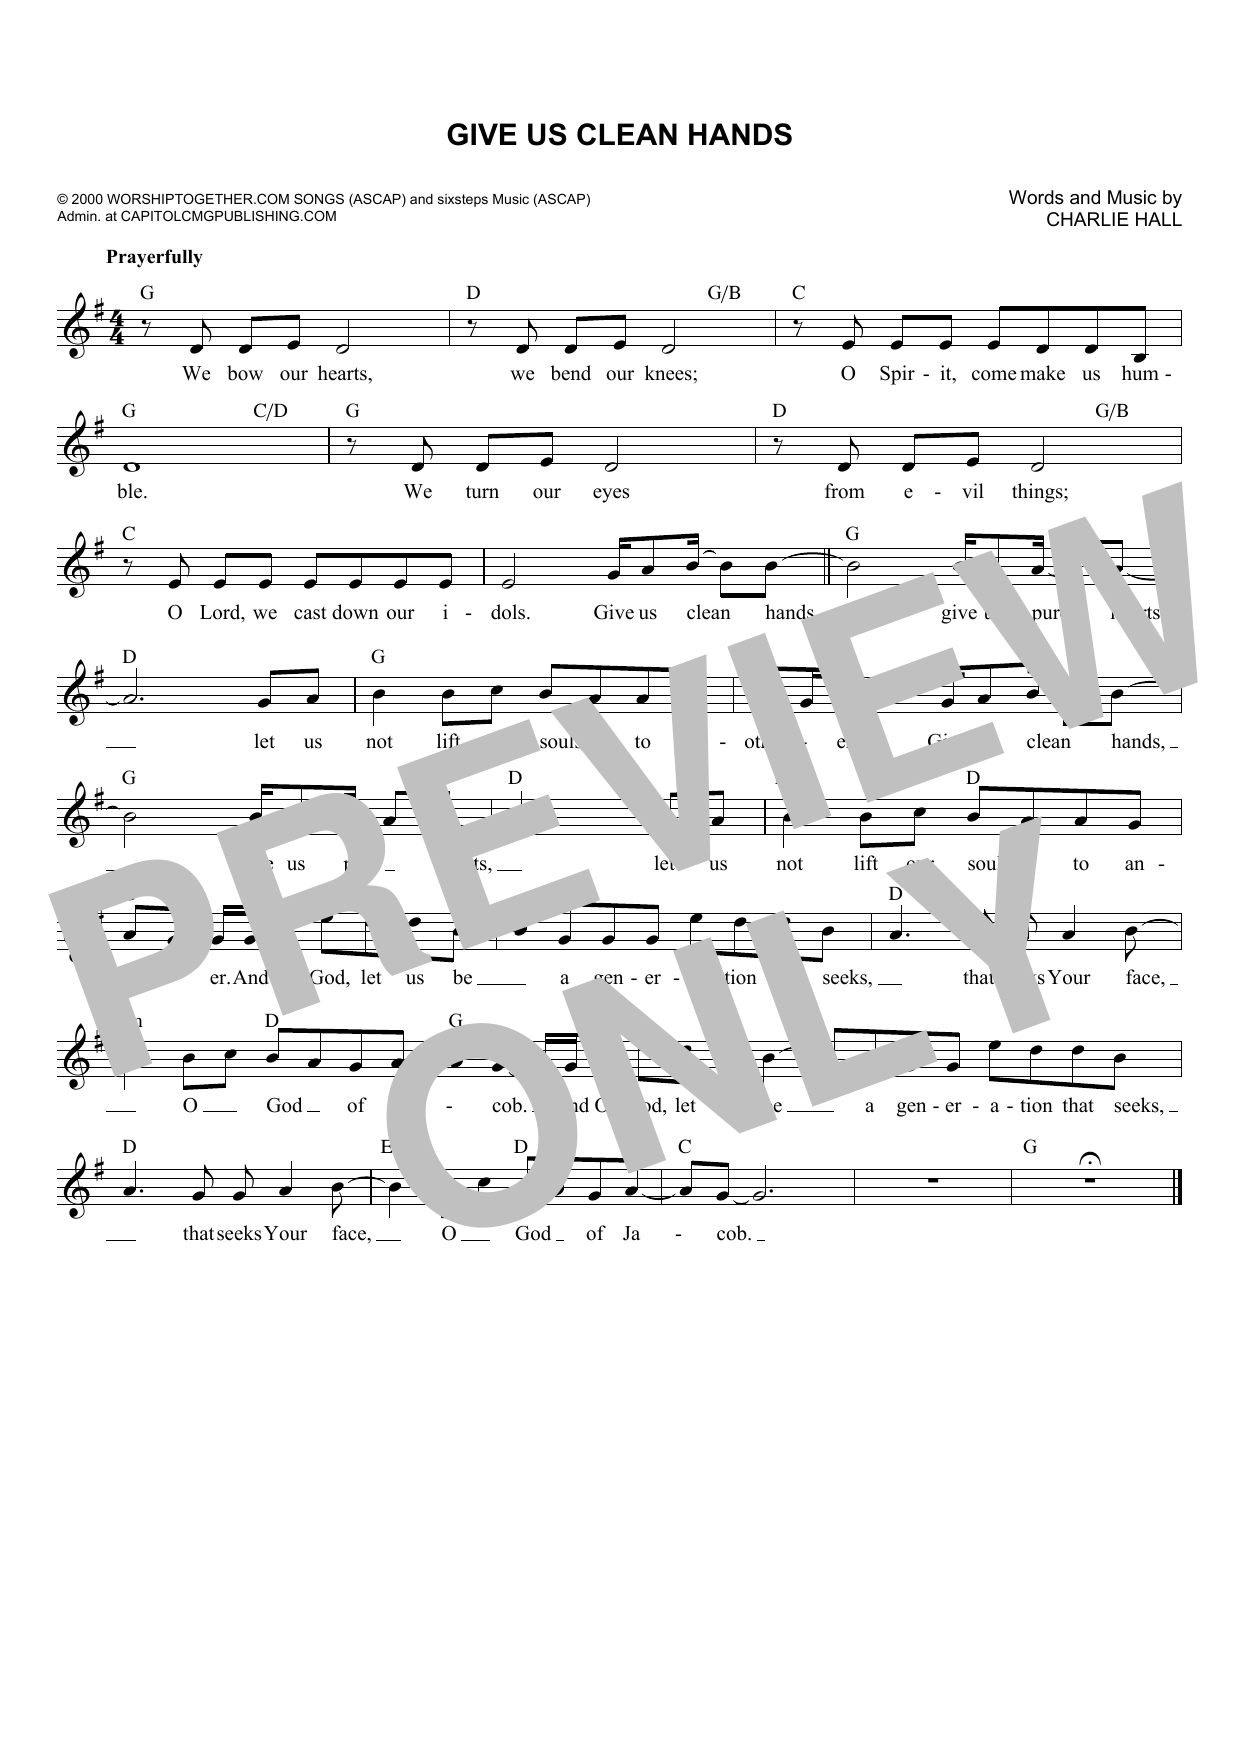 Charlie Hall Give Us Clean Hands Sheet Music Notes, Chords   Download  Printable Solo Guitar Tab PDF Score   SKU 15